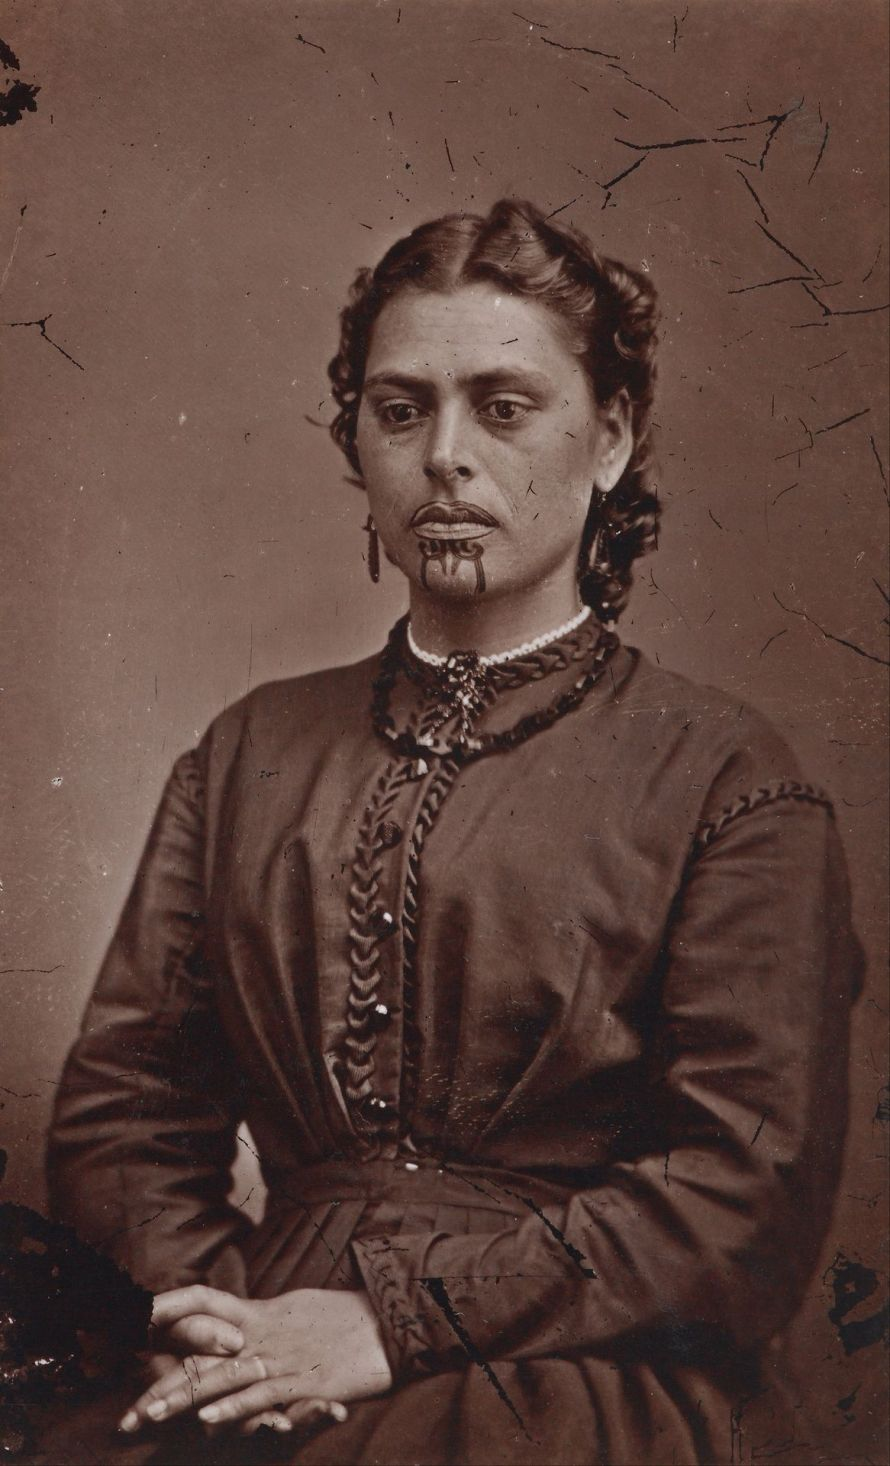 Mrs Rabone, American Photographic Company (Auckland), 1871. március 31. Kép: Museum of New Zealand Te Papa Tongarewa.